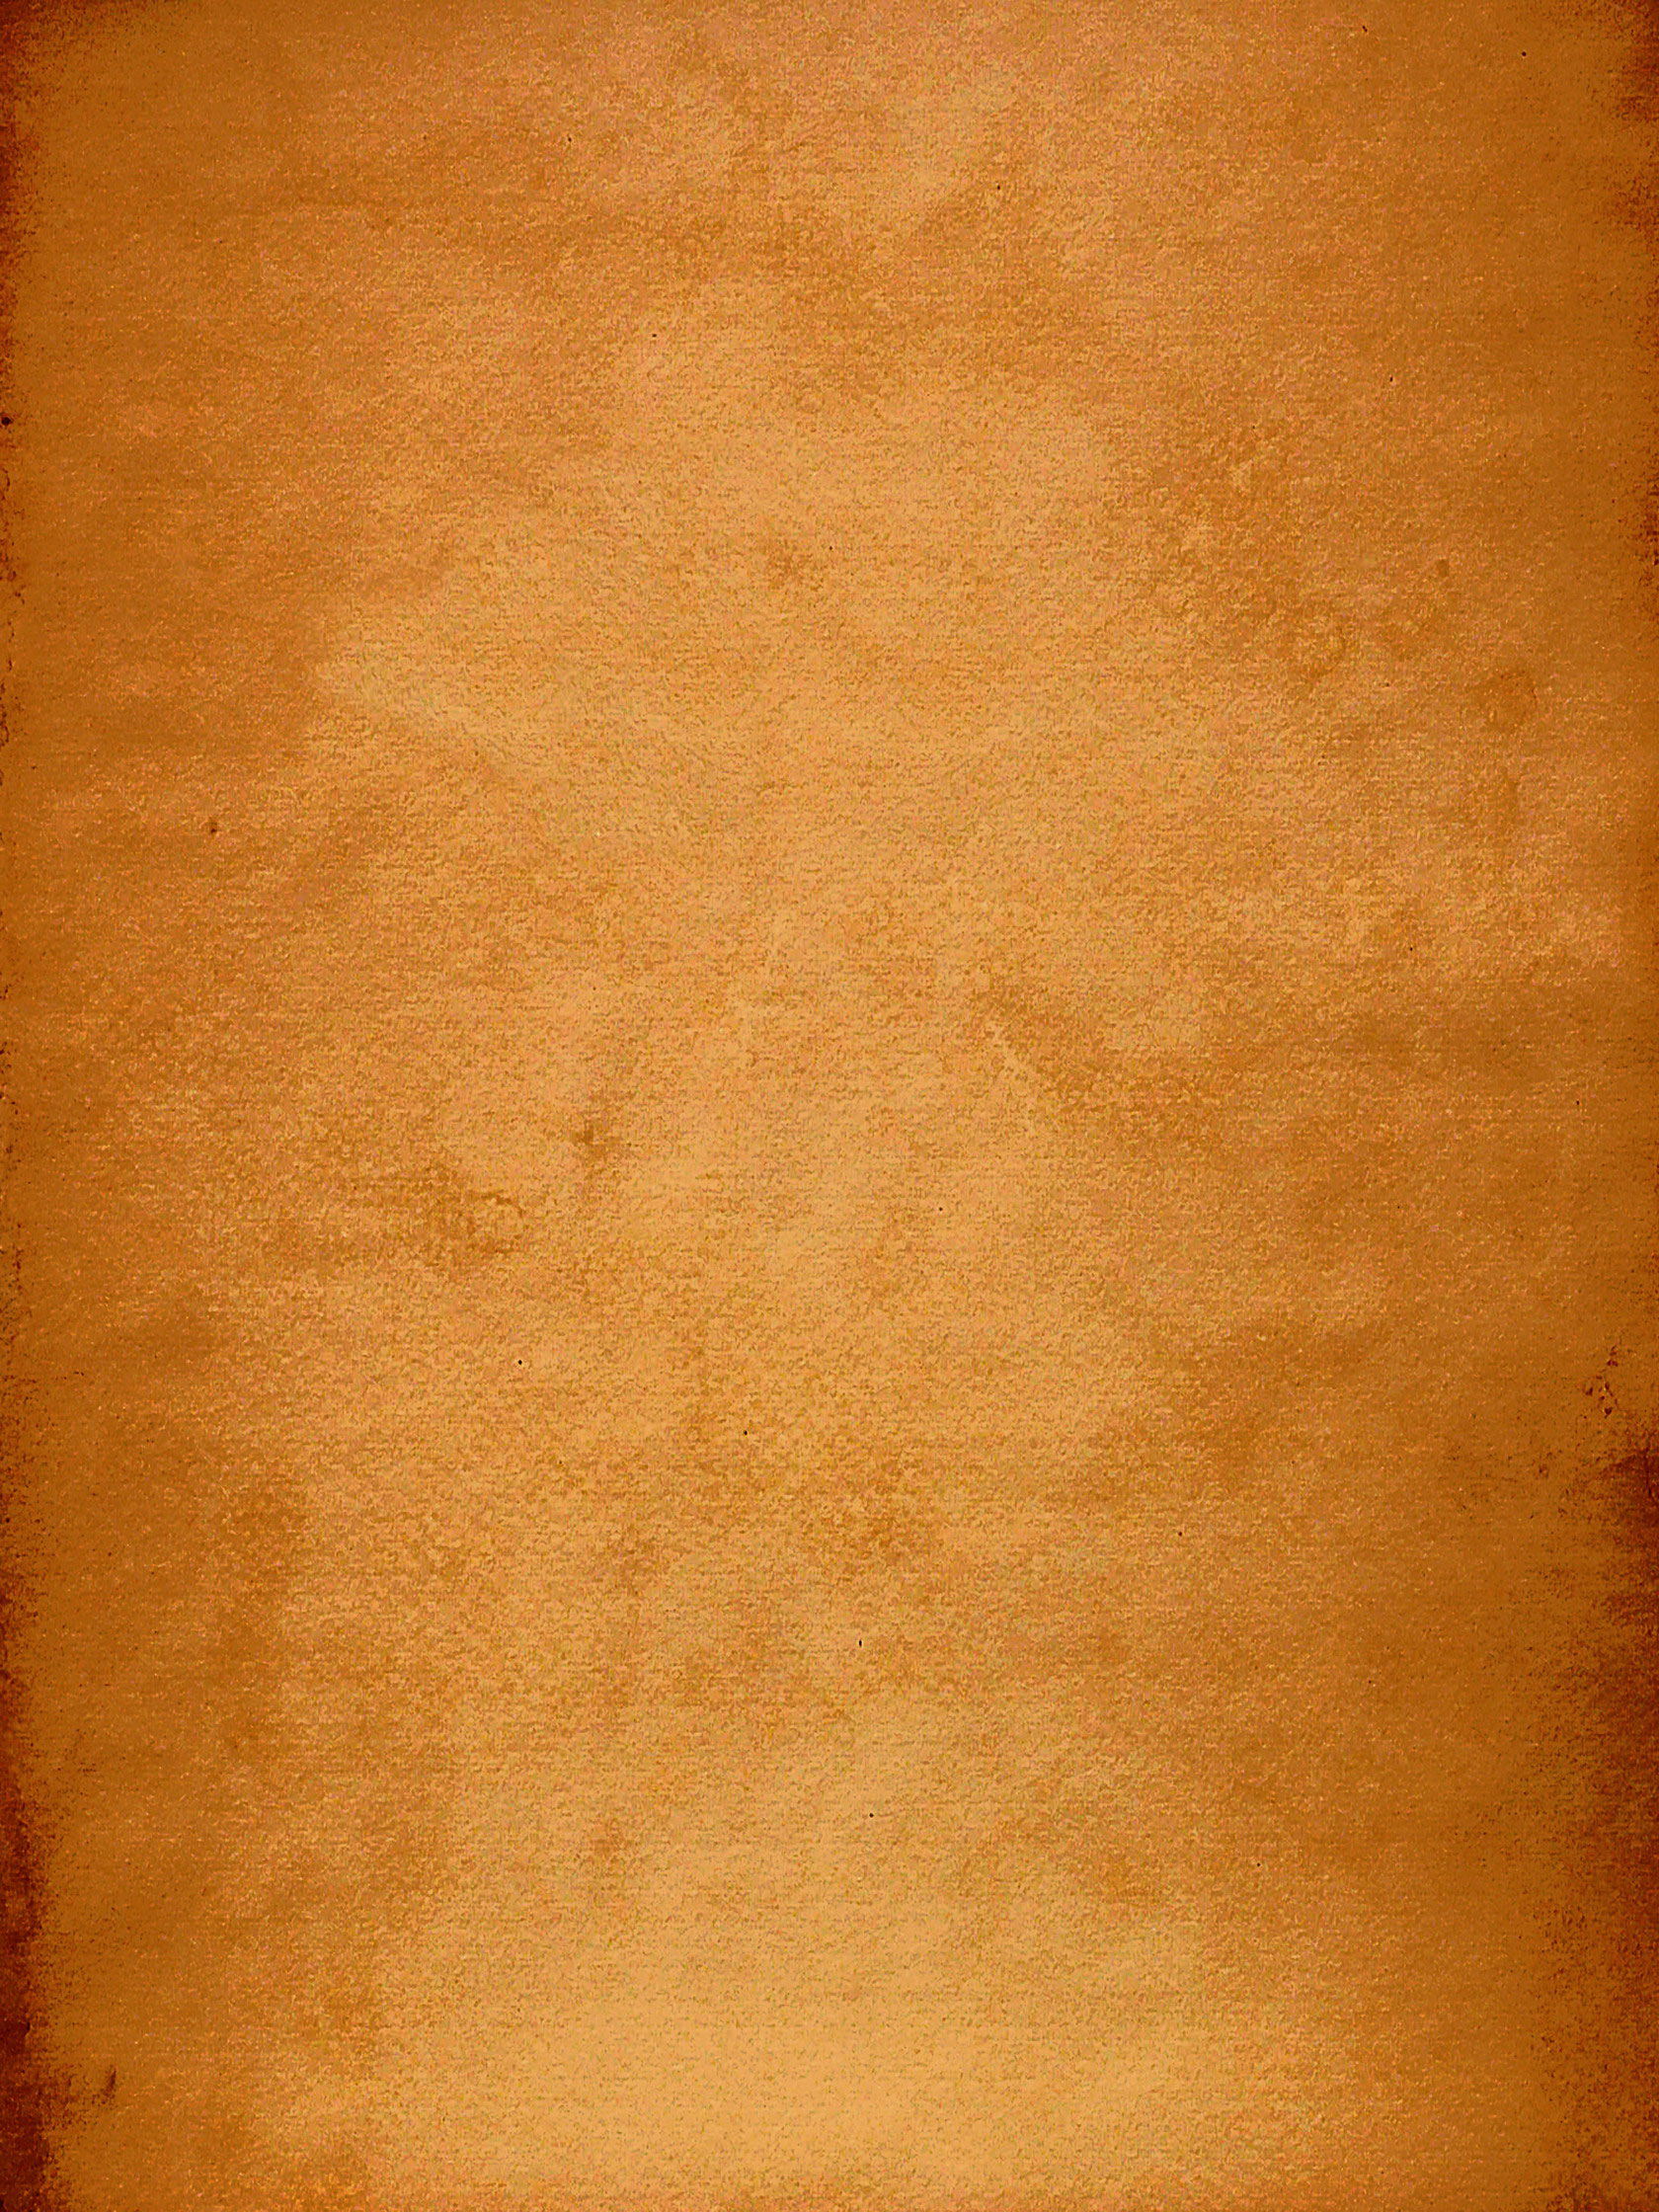 Картон текстура, картона, фон, cardboard texture, background